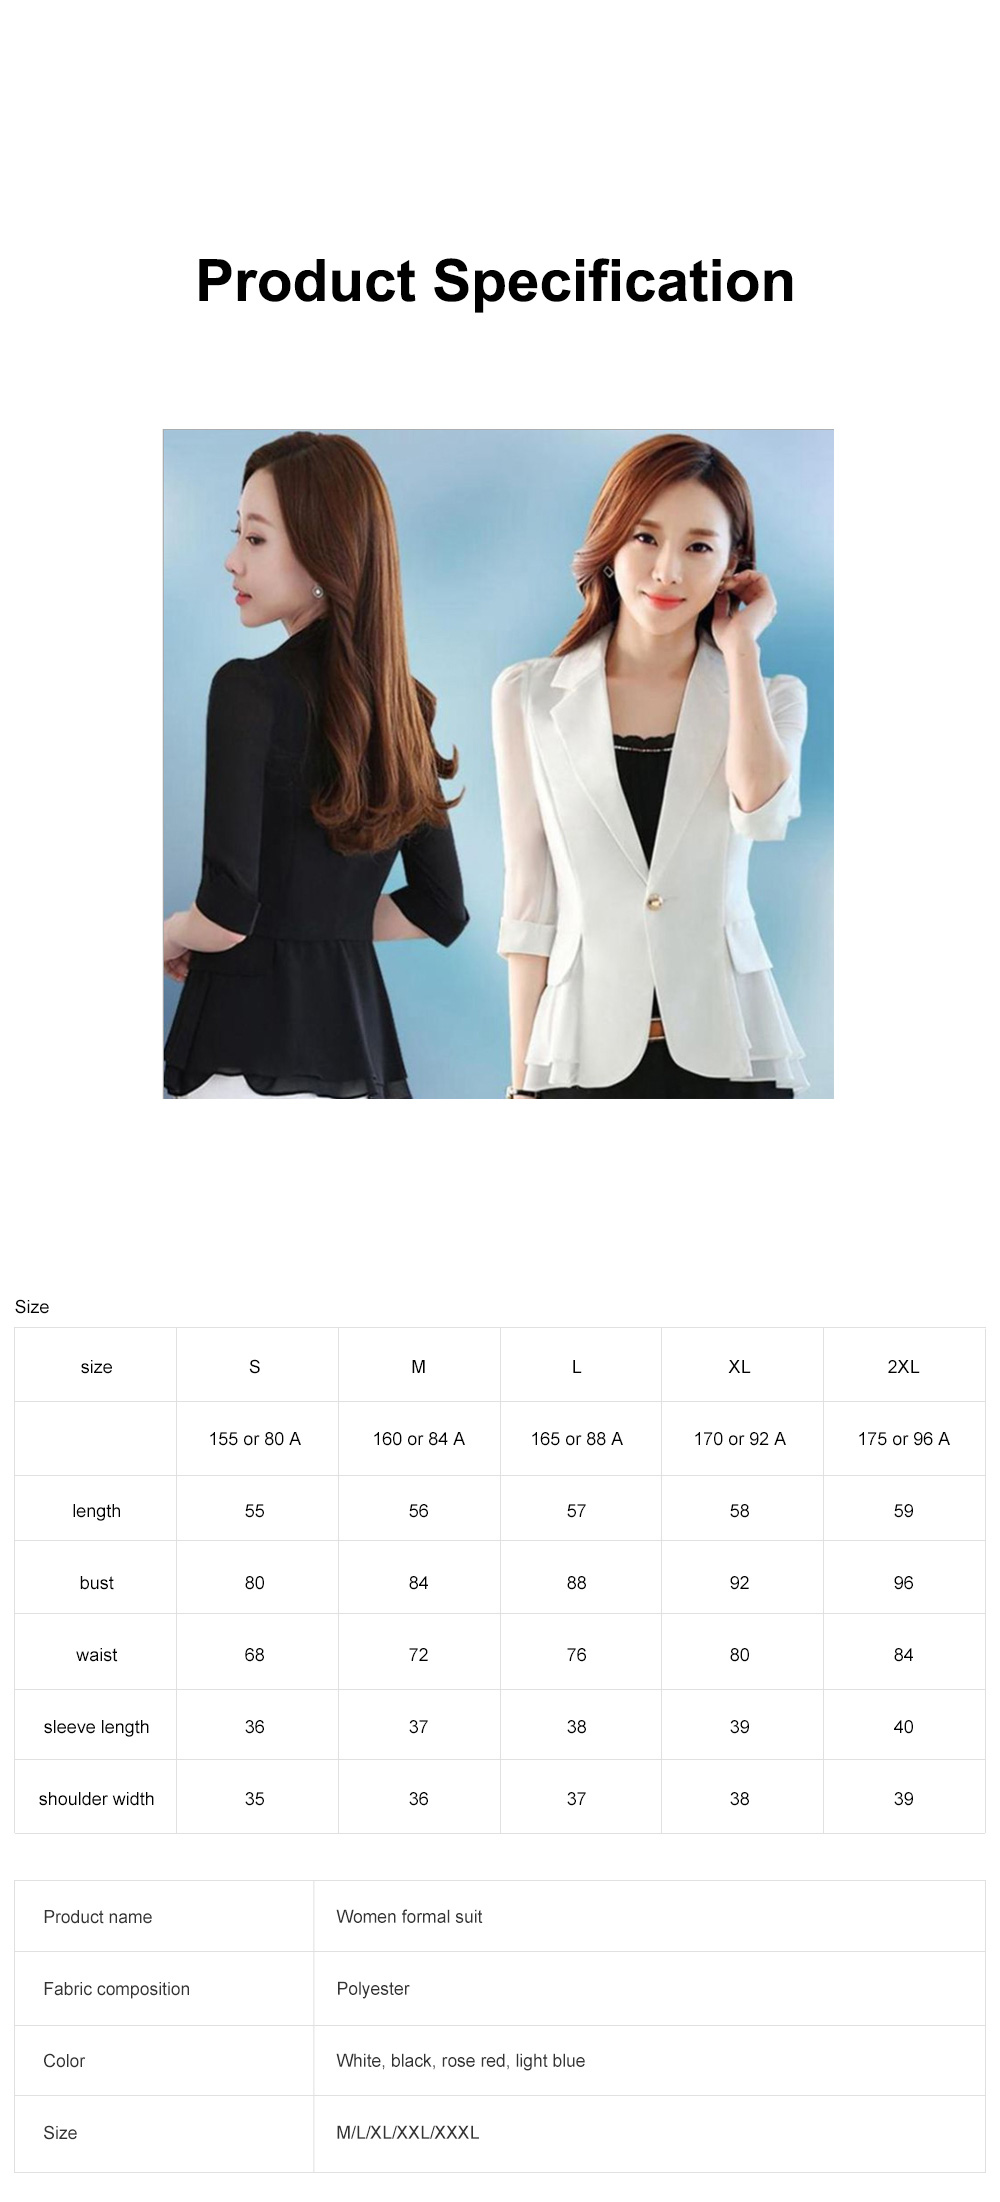 2019 Women New Design Fashion Formal Suit for Office Lady Work Wear Suit Seven-point Sleeves Ruffled Chiffon Women's Jacket Short Paragraph Slim 6